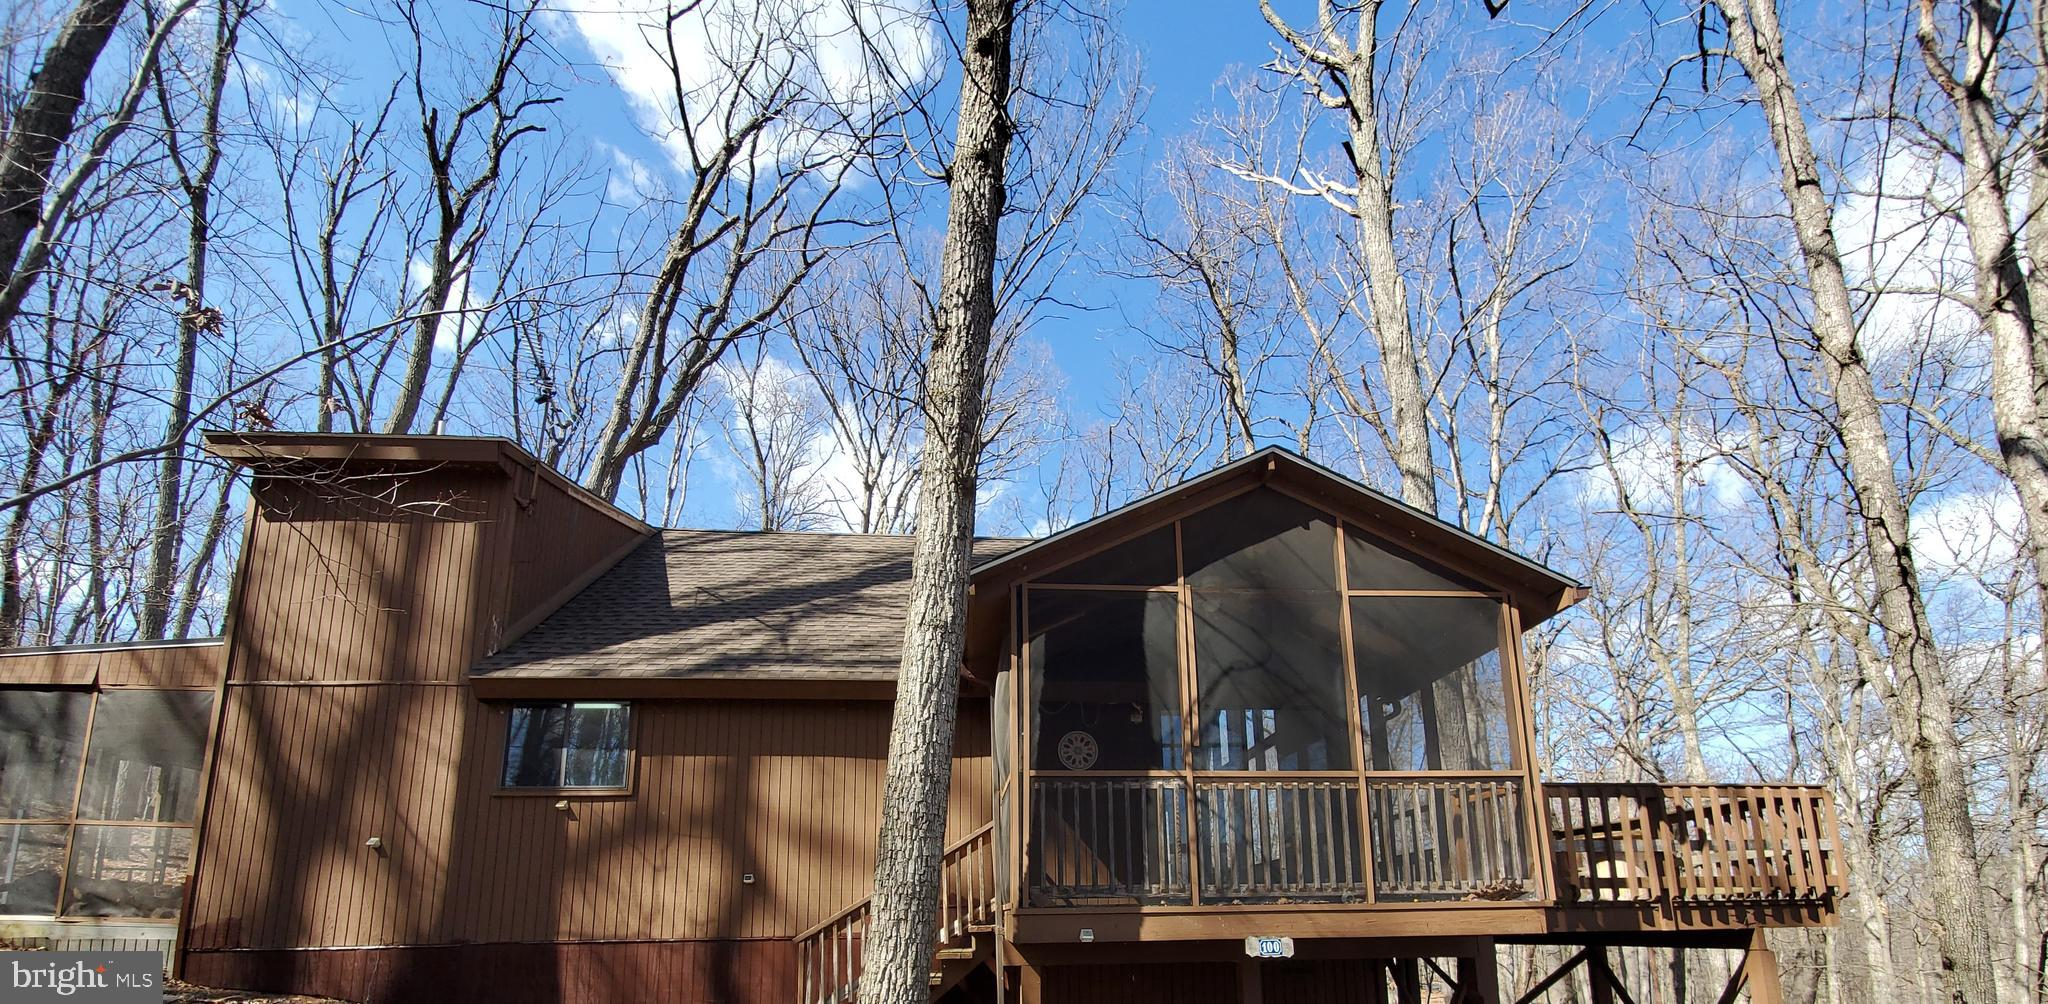 ELMWOOD MODEL - This 2 Bedroom, 2 Bath  Chalet is MOVE-IN READY . Situated on almost 1 acre wooded